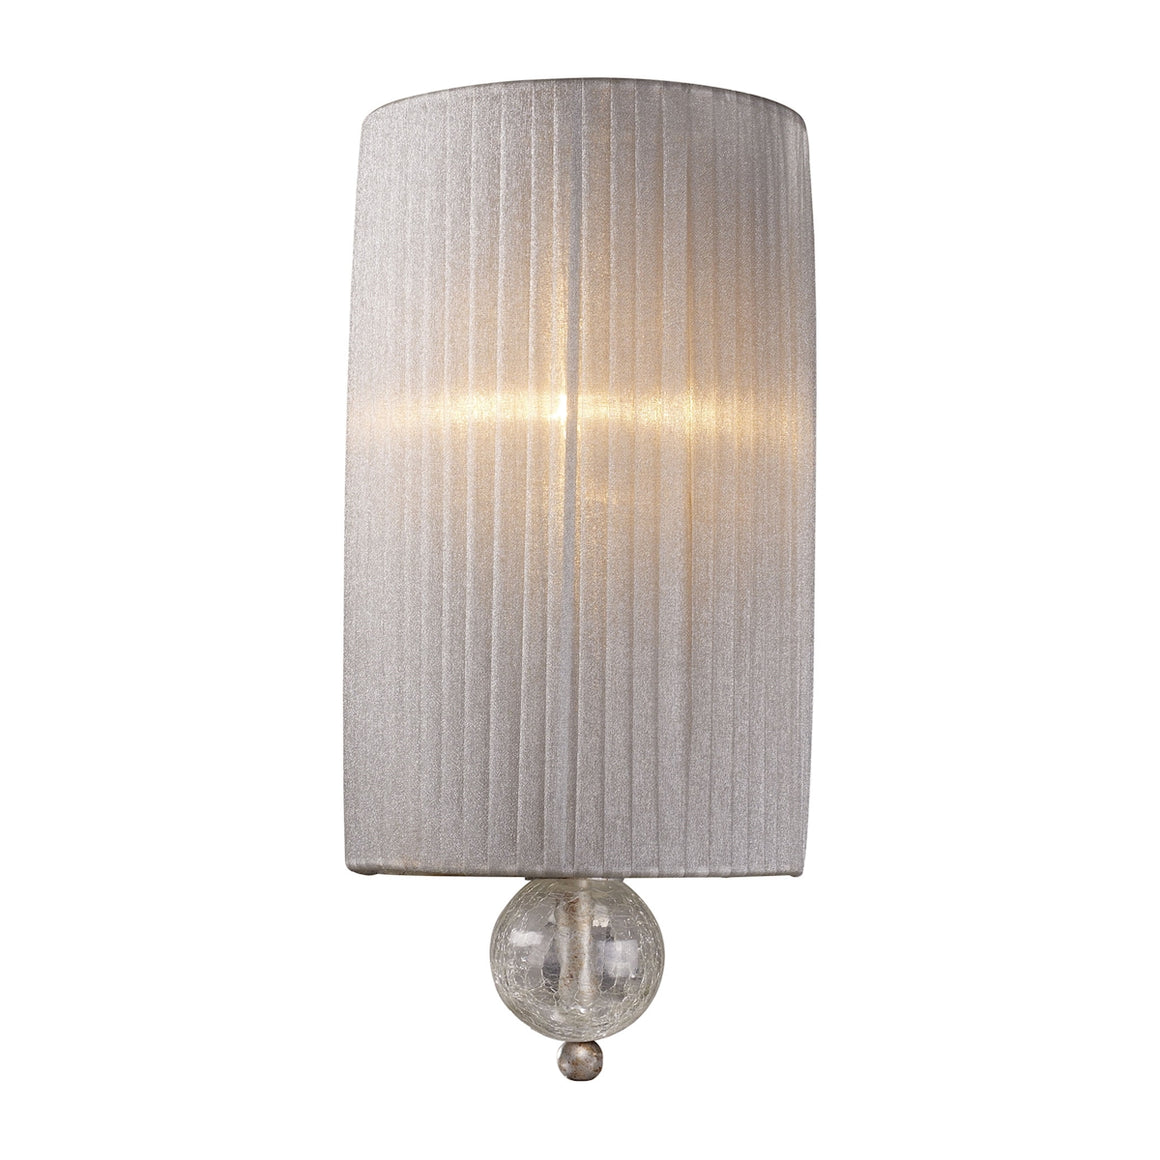 Sconces plum 28 alexis 1 light wall sconce in antique silver 200051 by elk lighting amipublicfo Image collections